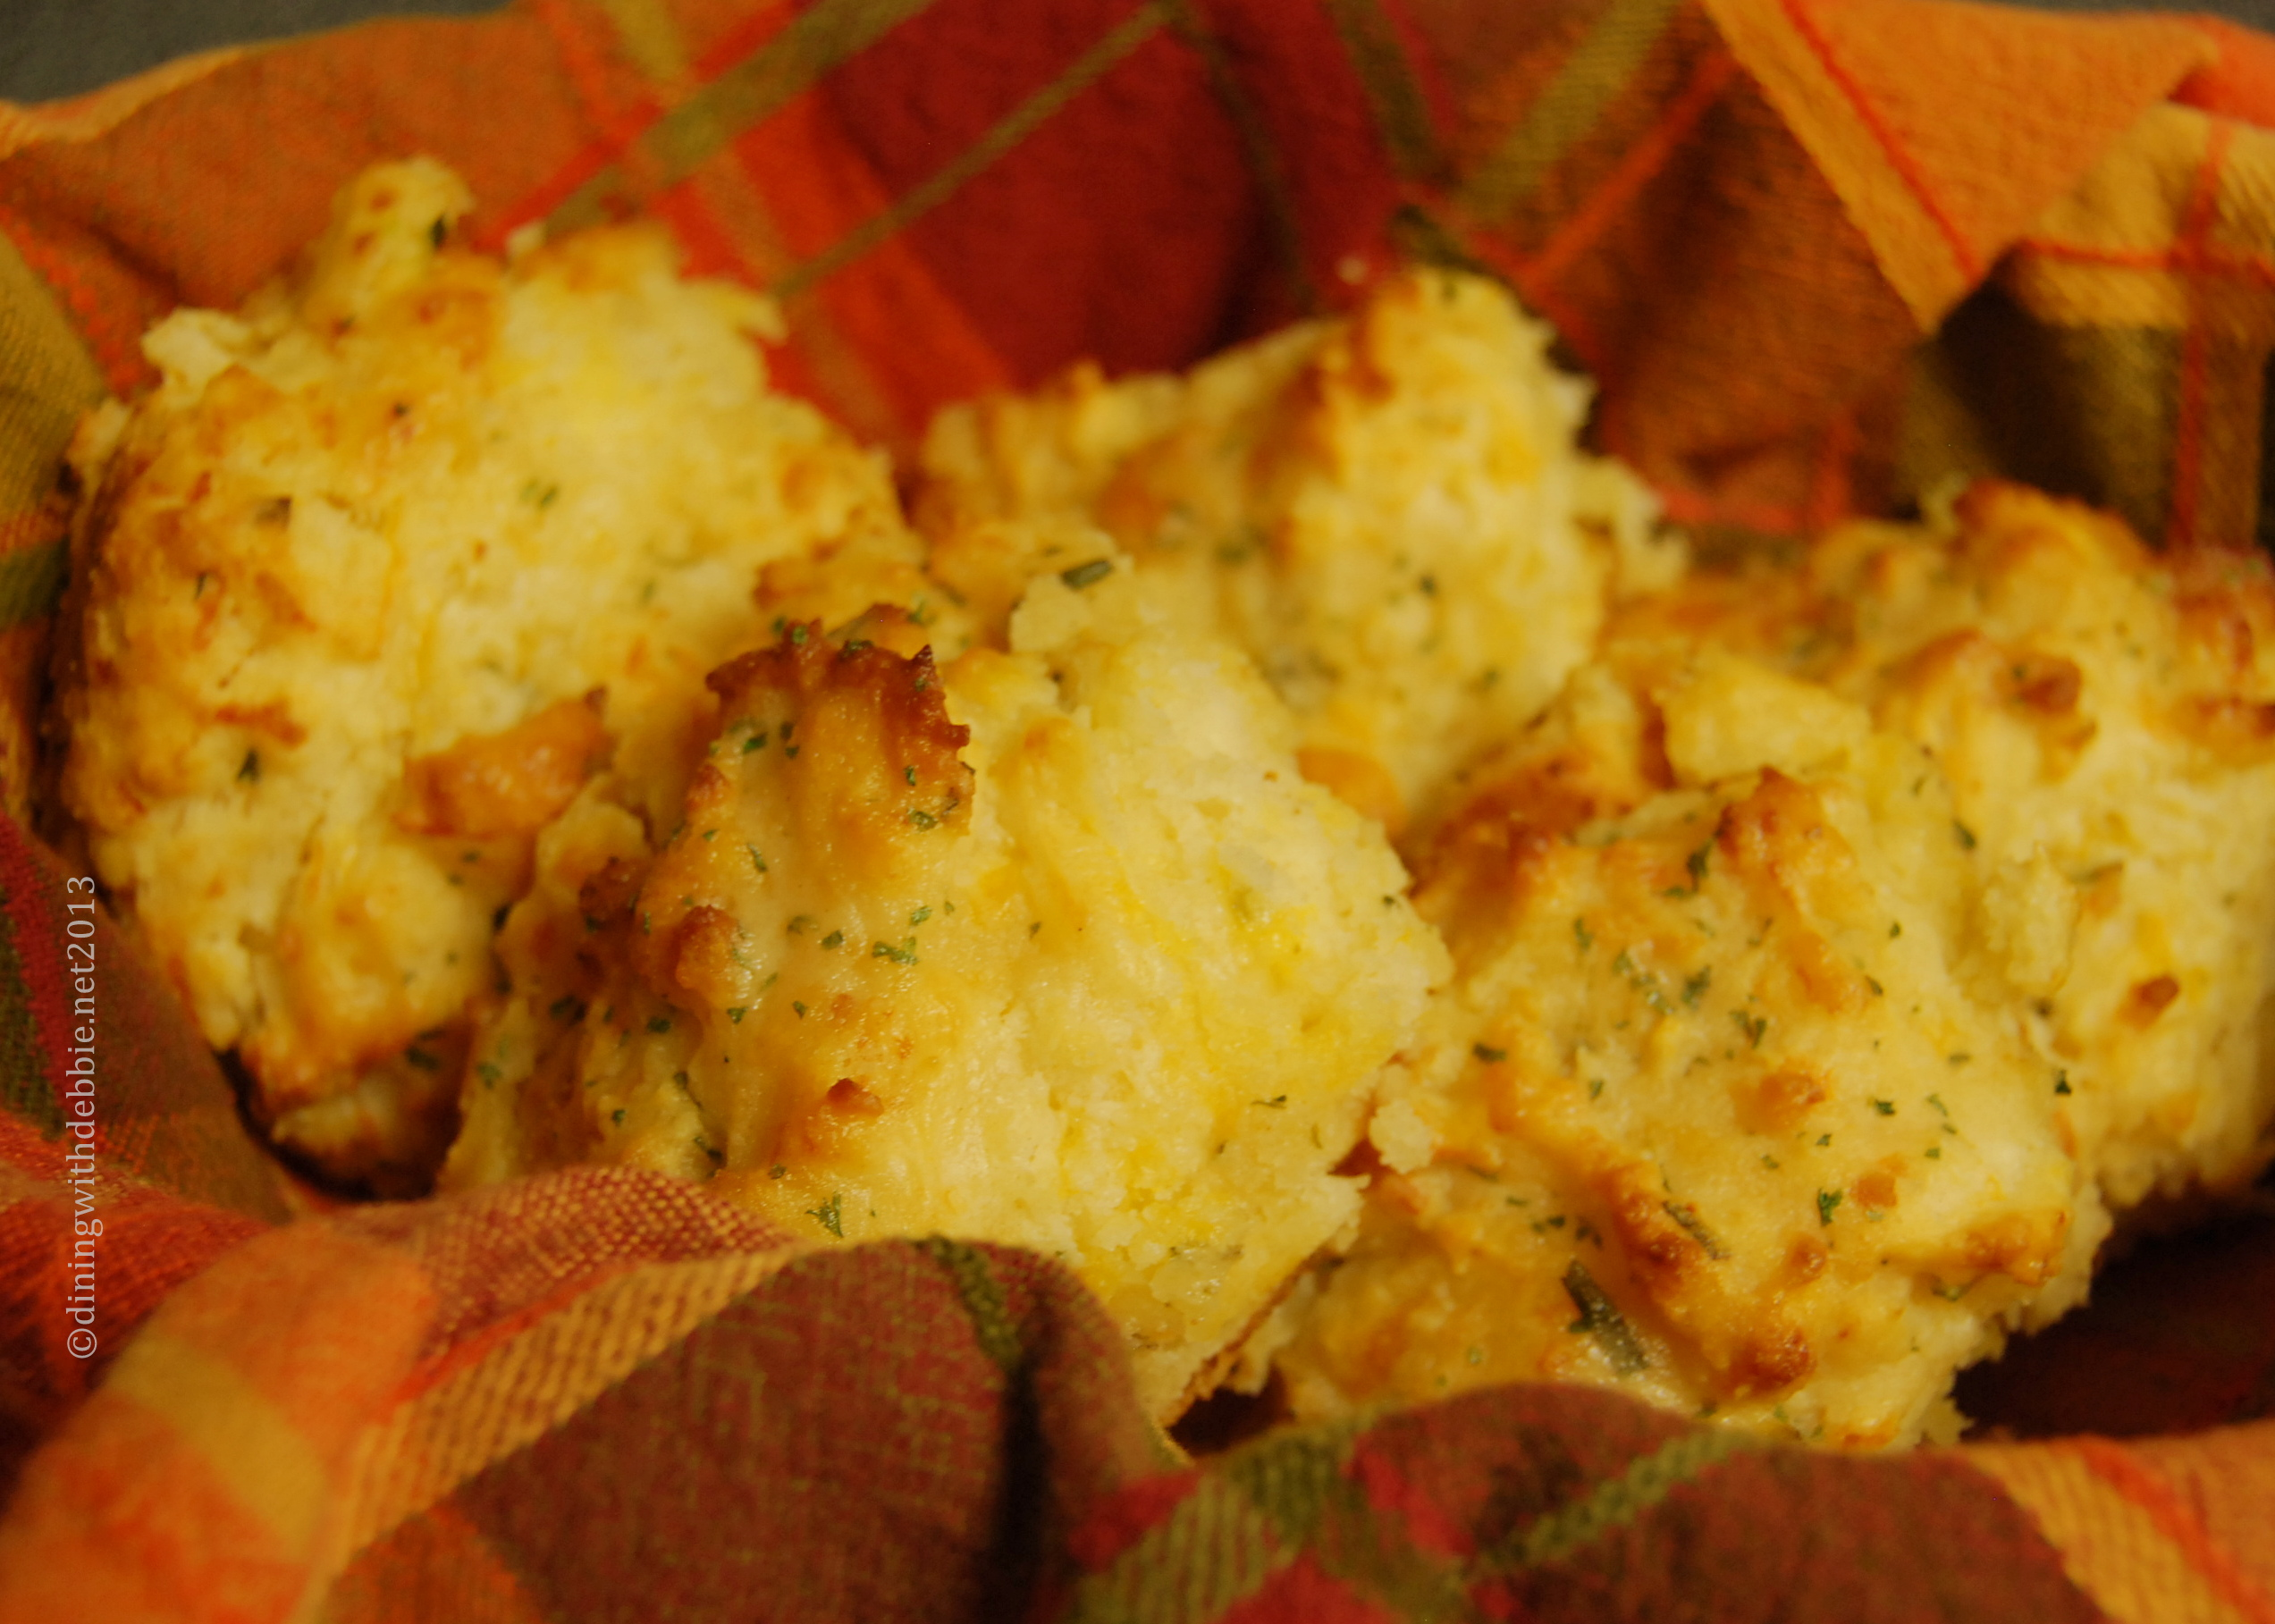 pioneer woman cheddar chive biscuits